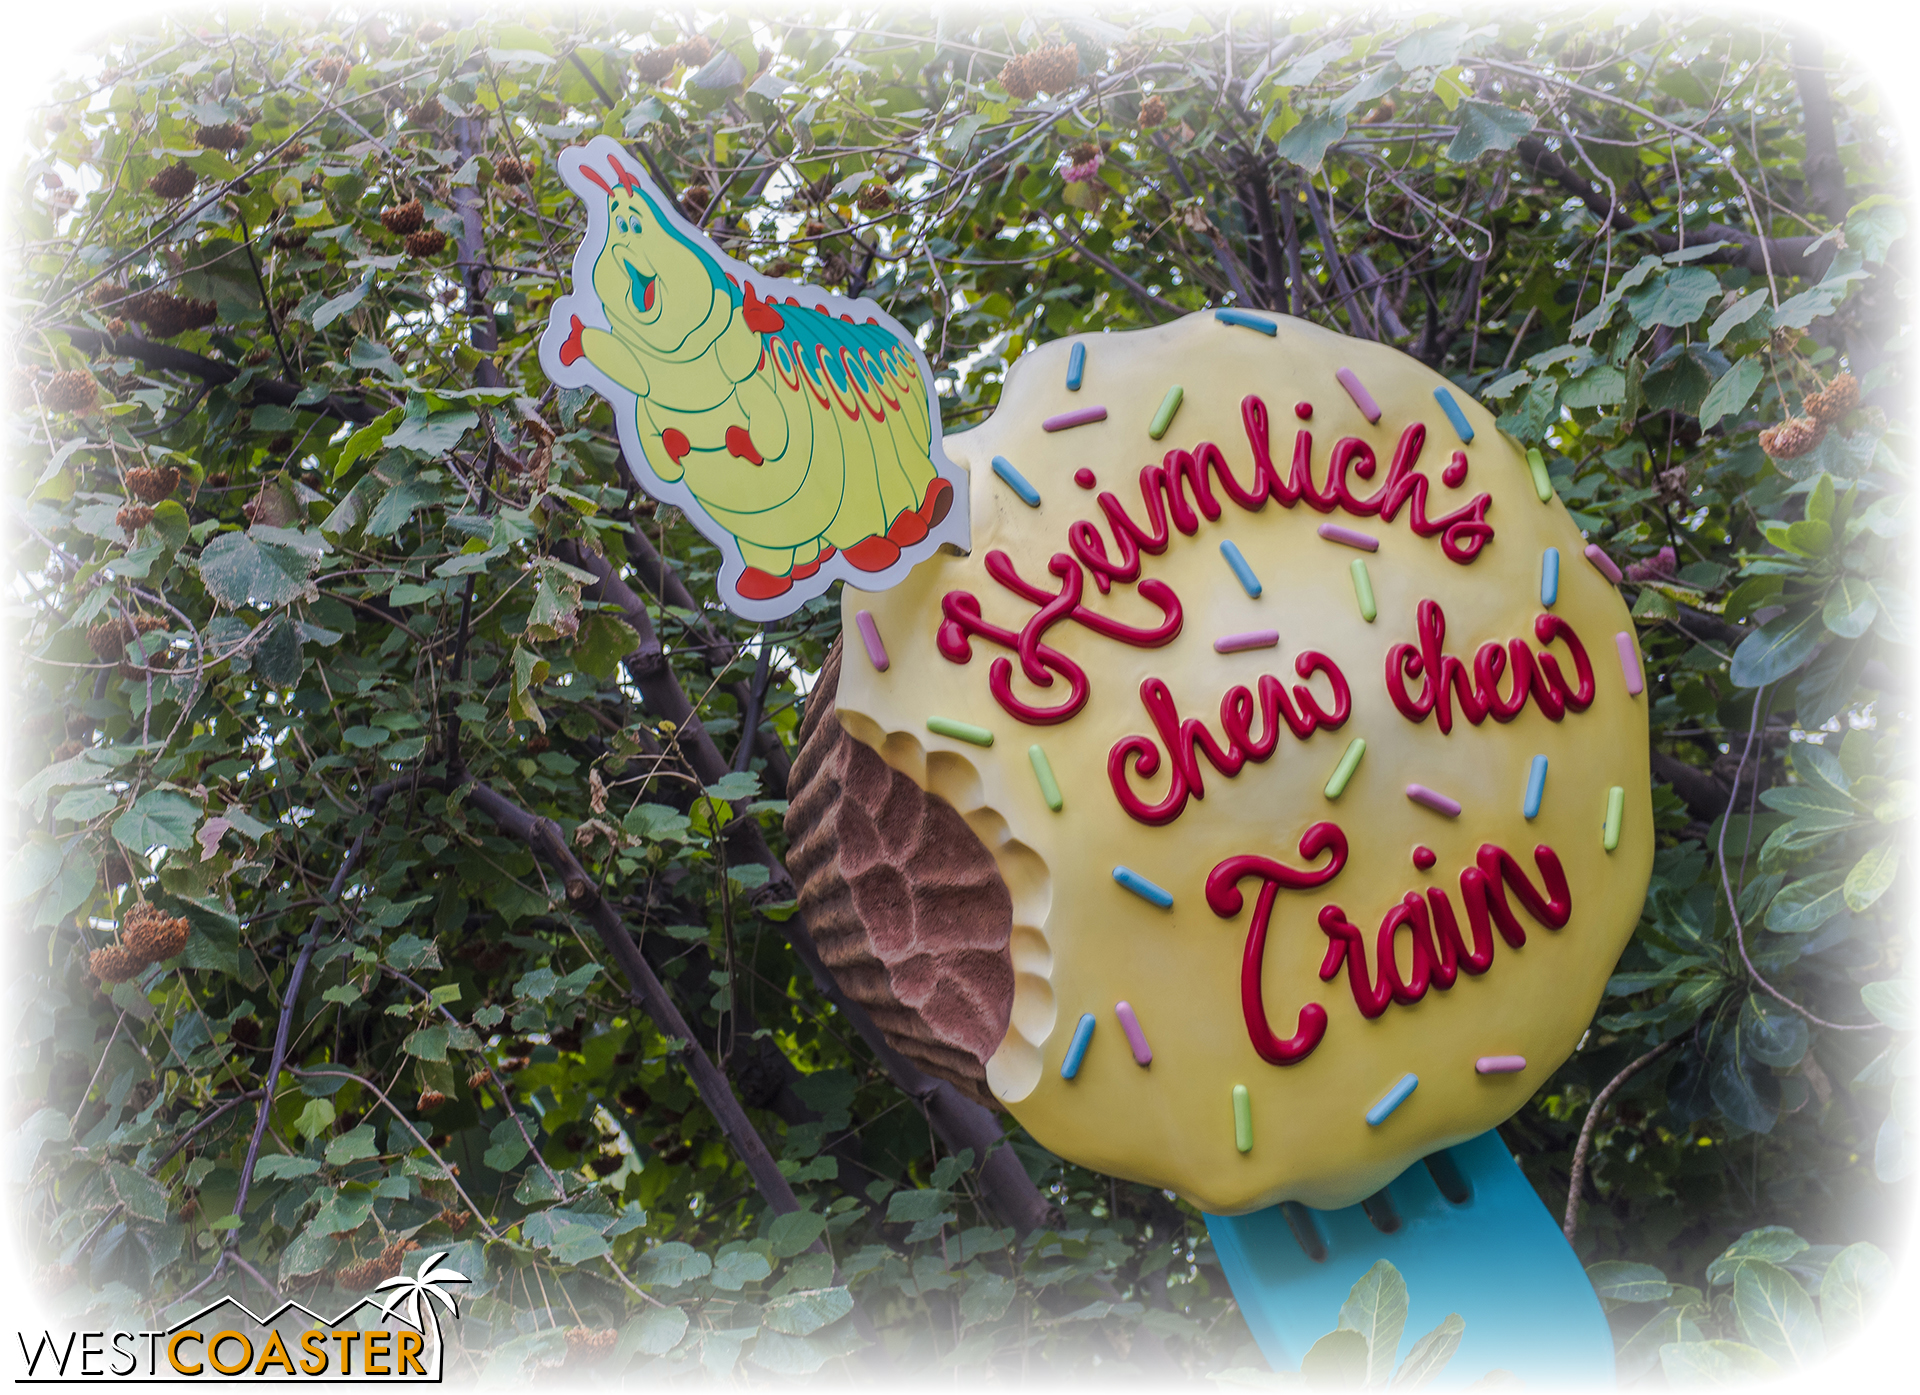 Most devastatingly, though, we bid adieu to the best ride in the history of the universe, Heimlich's Chew Chew Train.